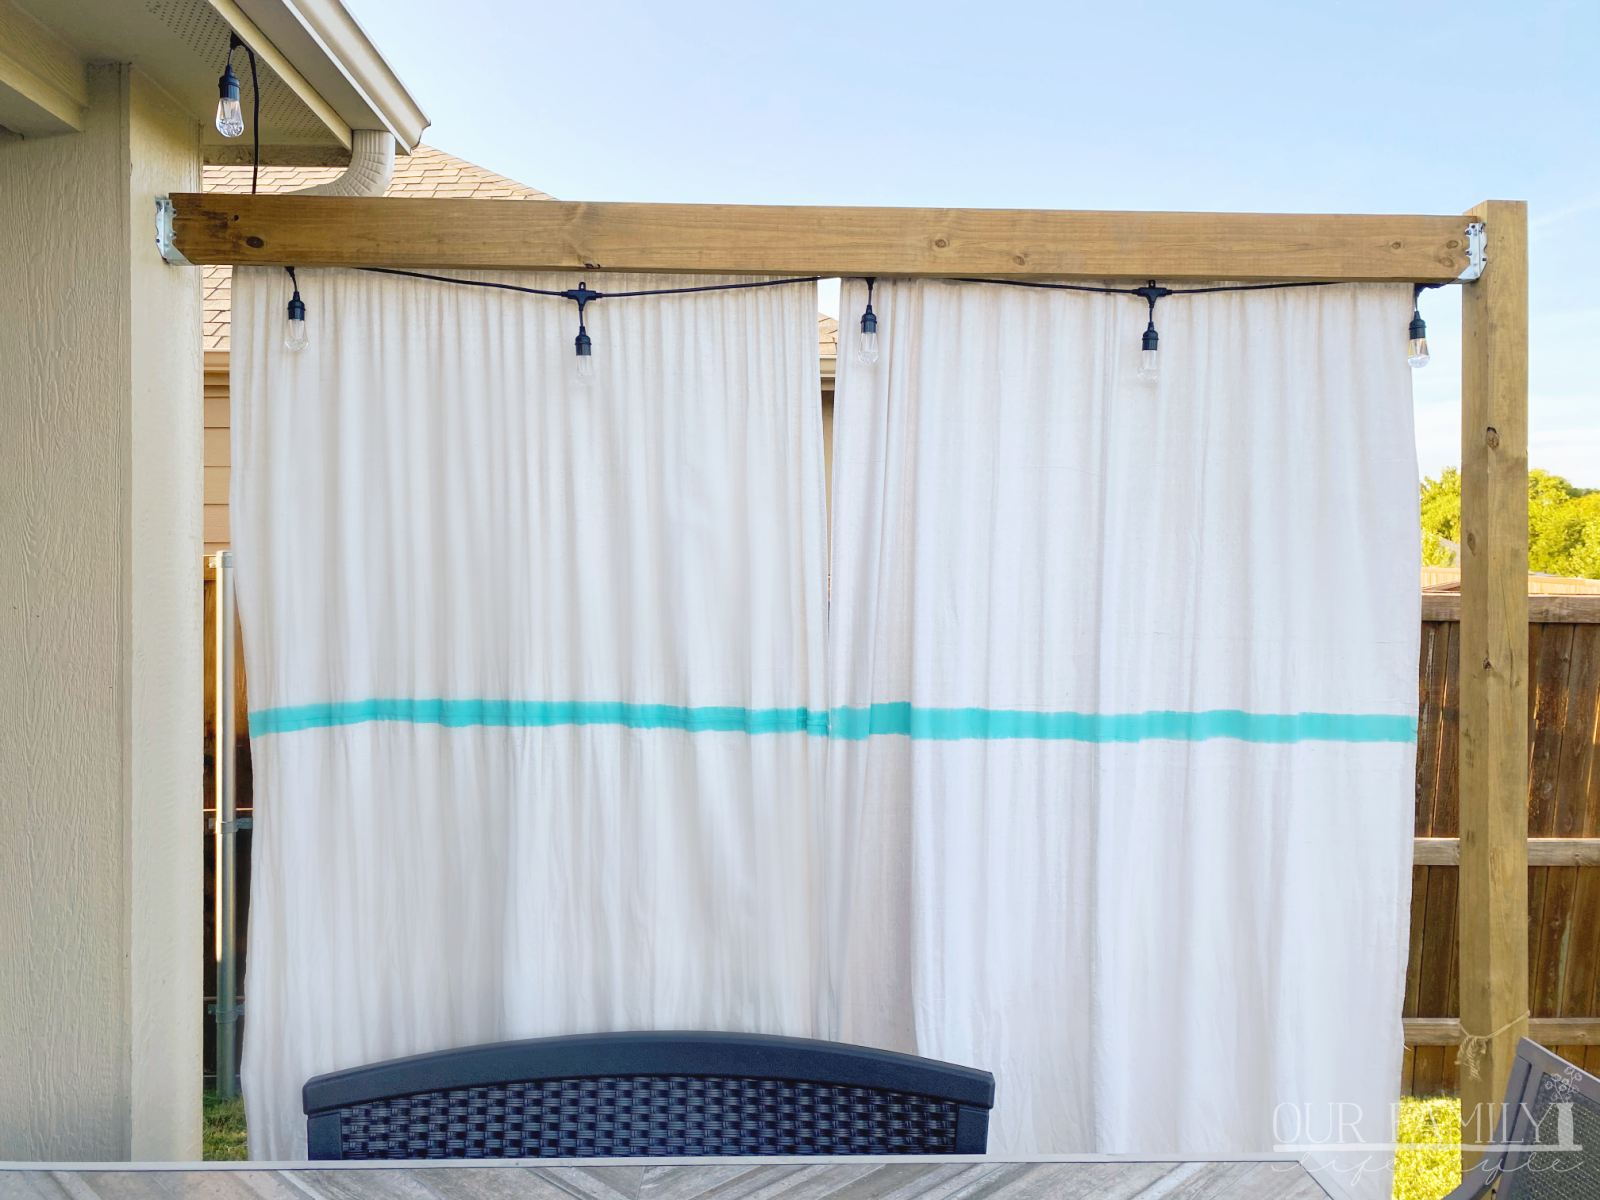 DIY Outdoor Privacy Drop Cloth Screen